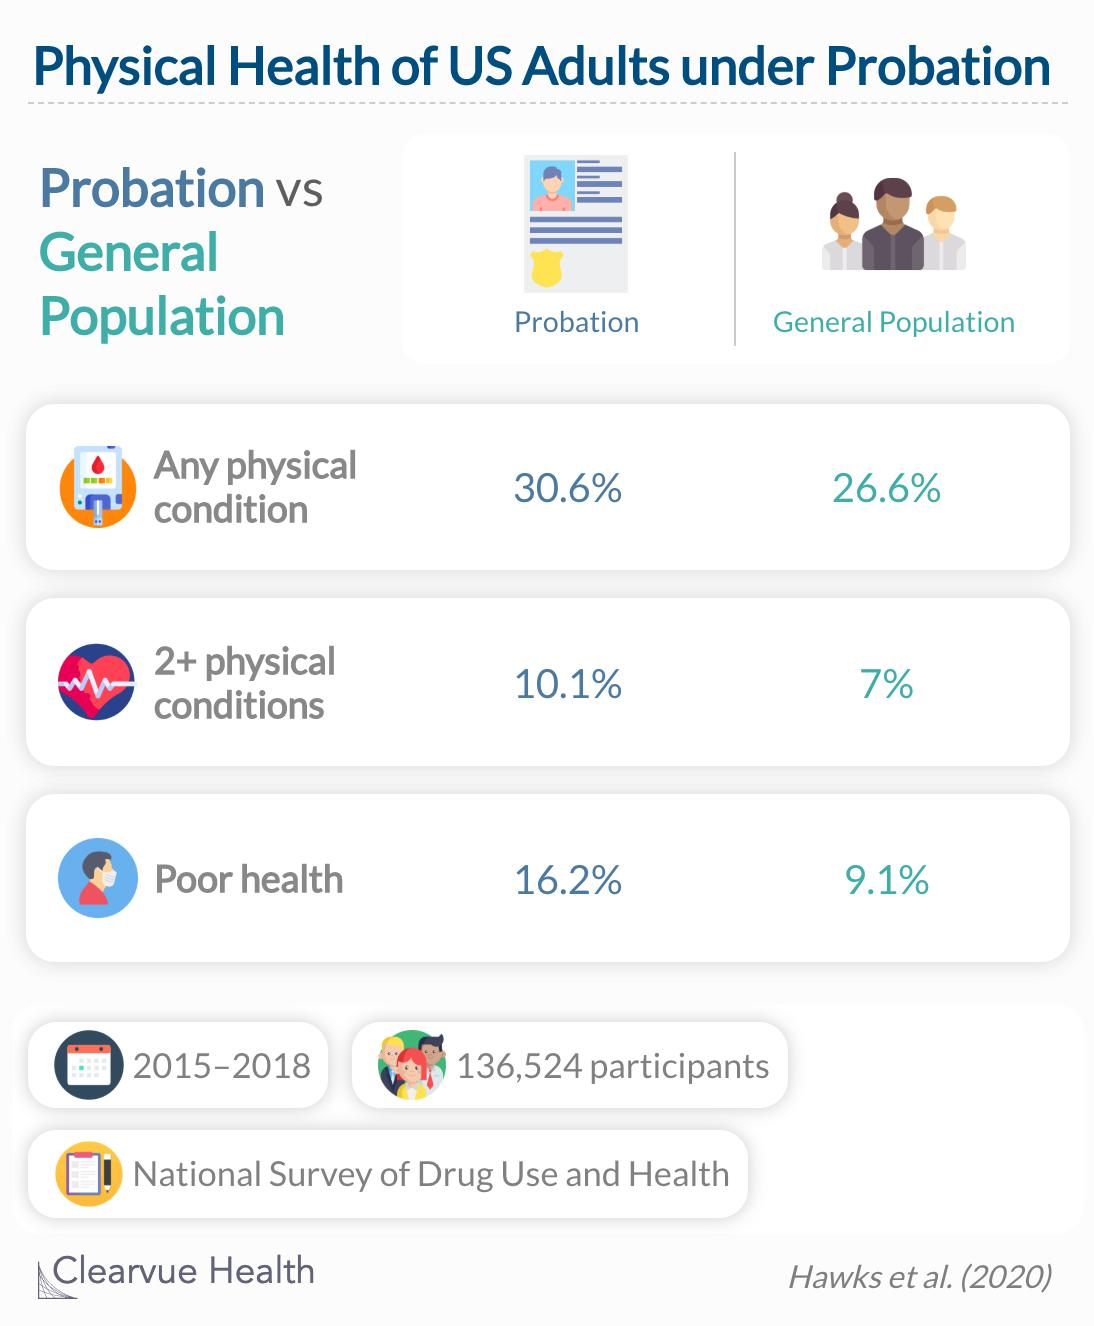 Persons on probation have an increased burden of disease and receive less outpatient care but more acute services than persons not on probation.